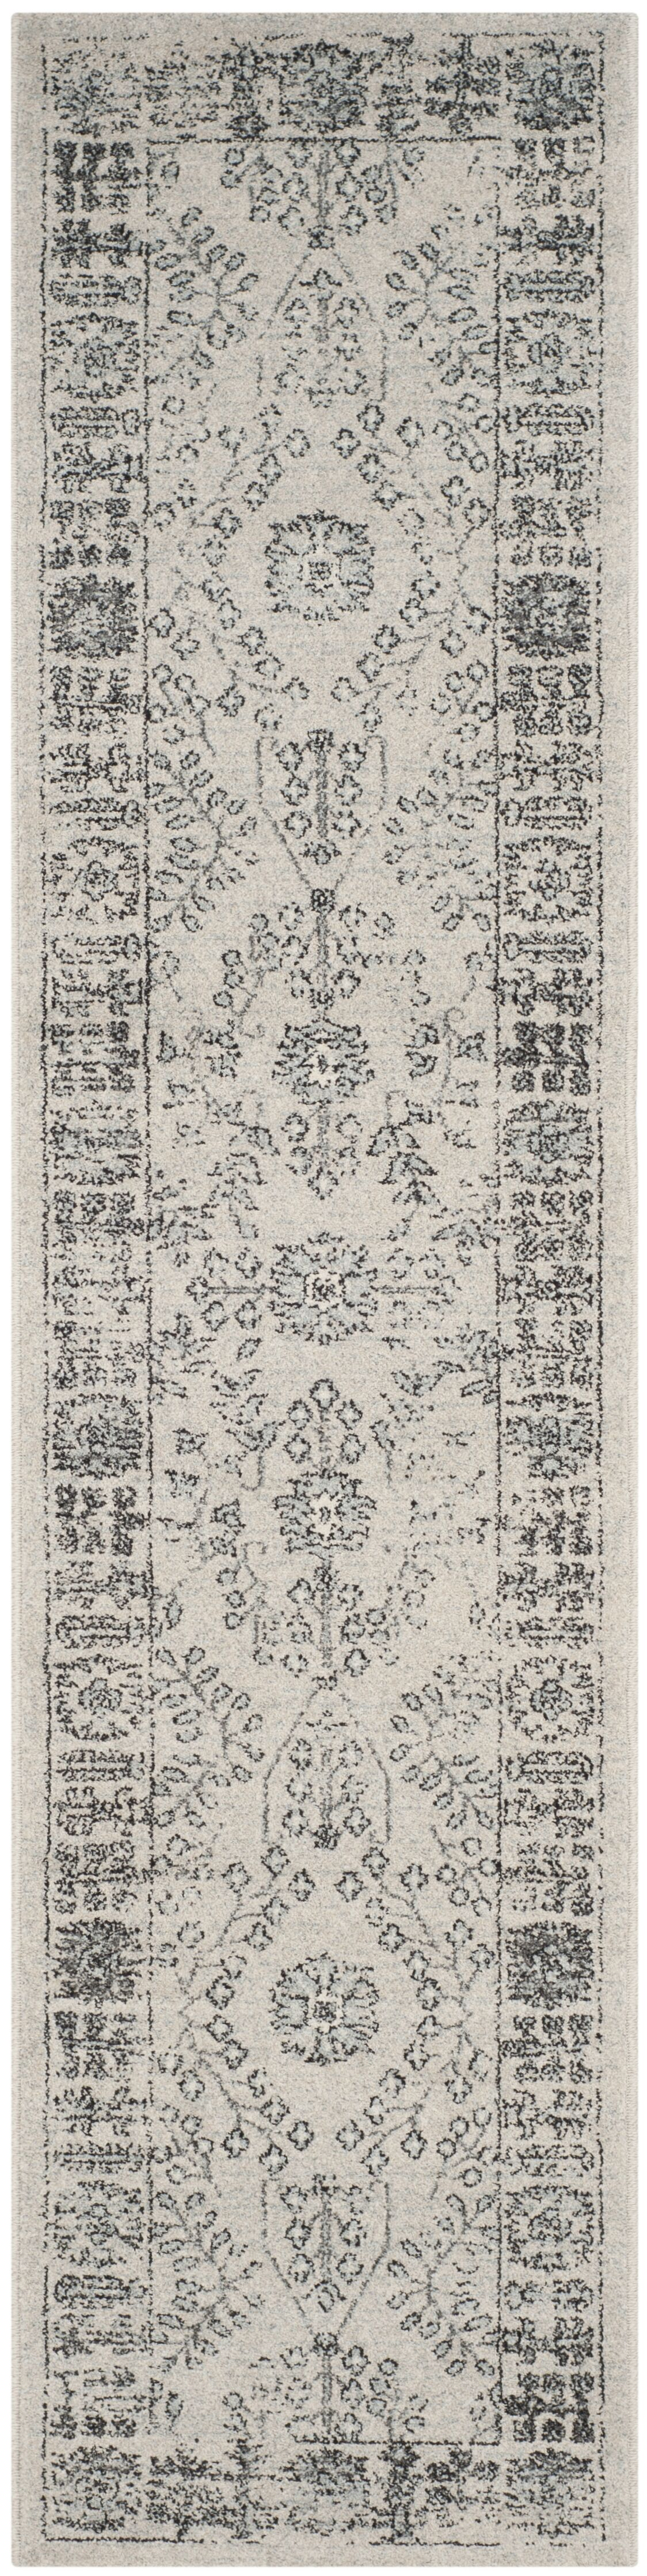 Harwick Beige and Blue Area Rug Rug Size: Runner 2' x 10'